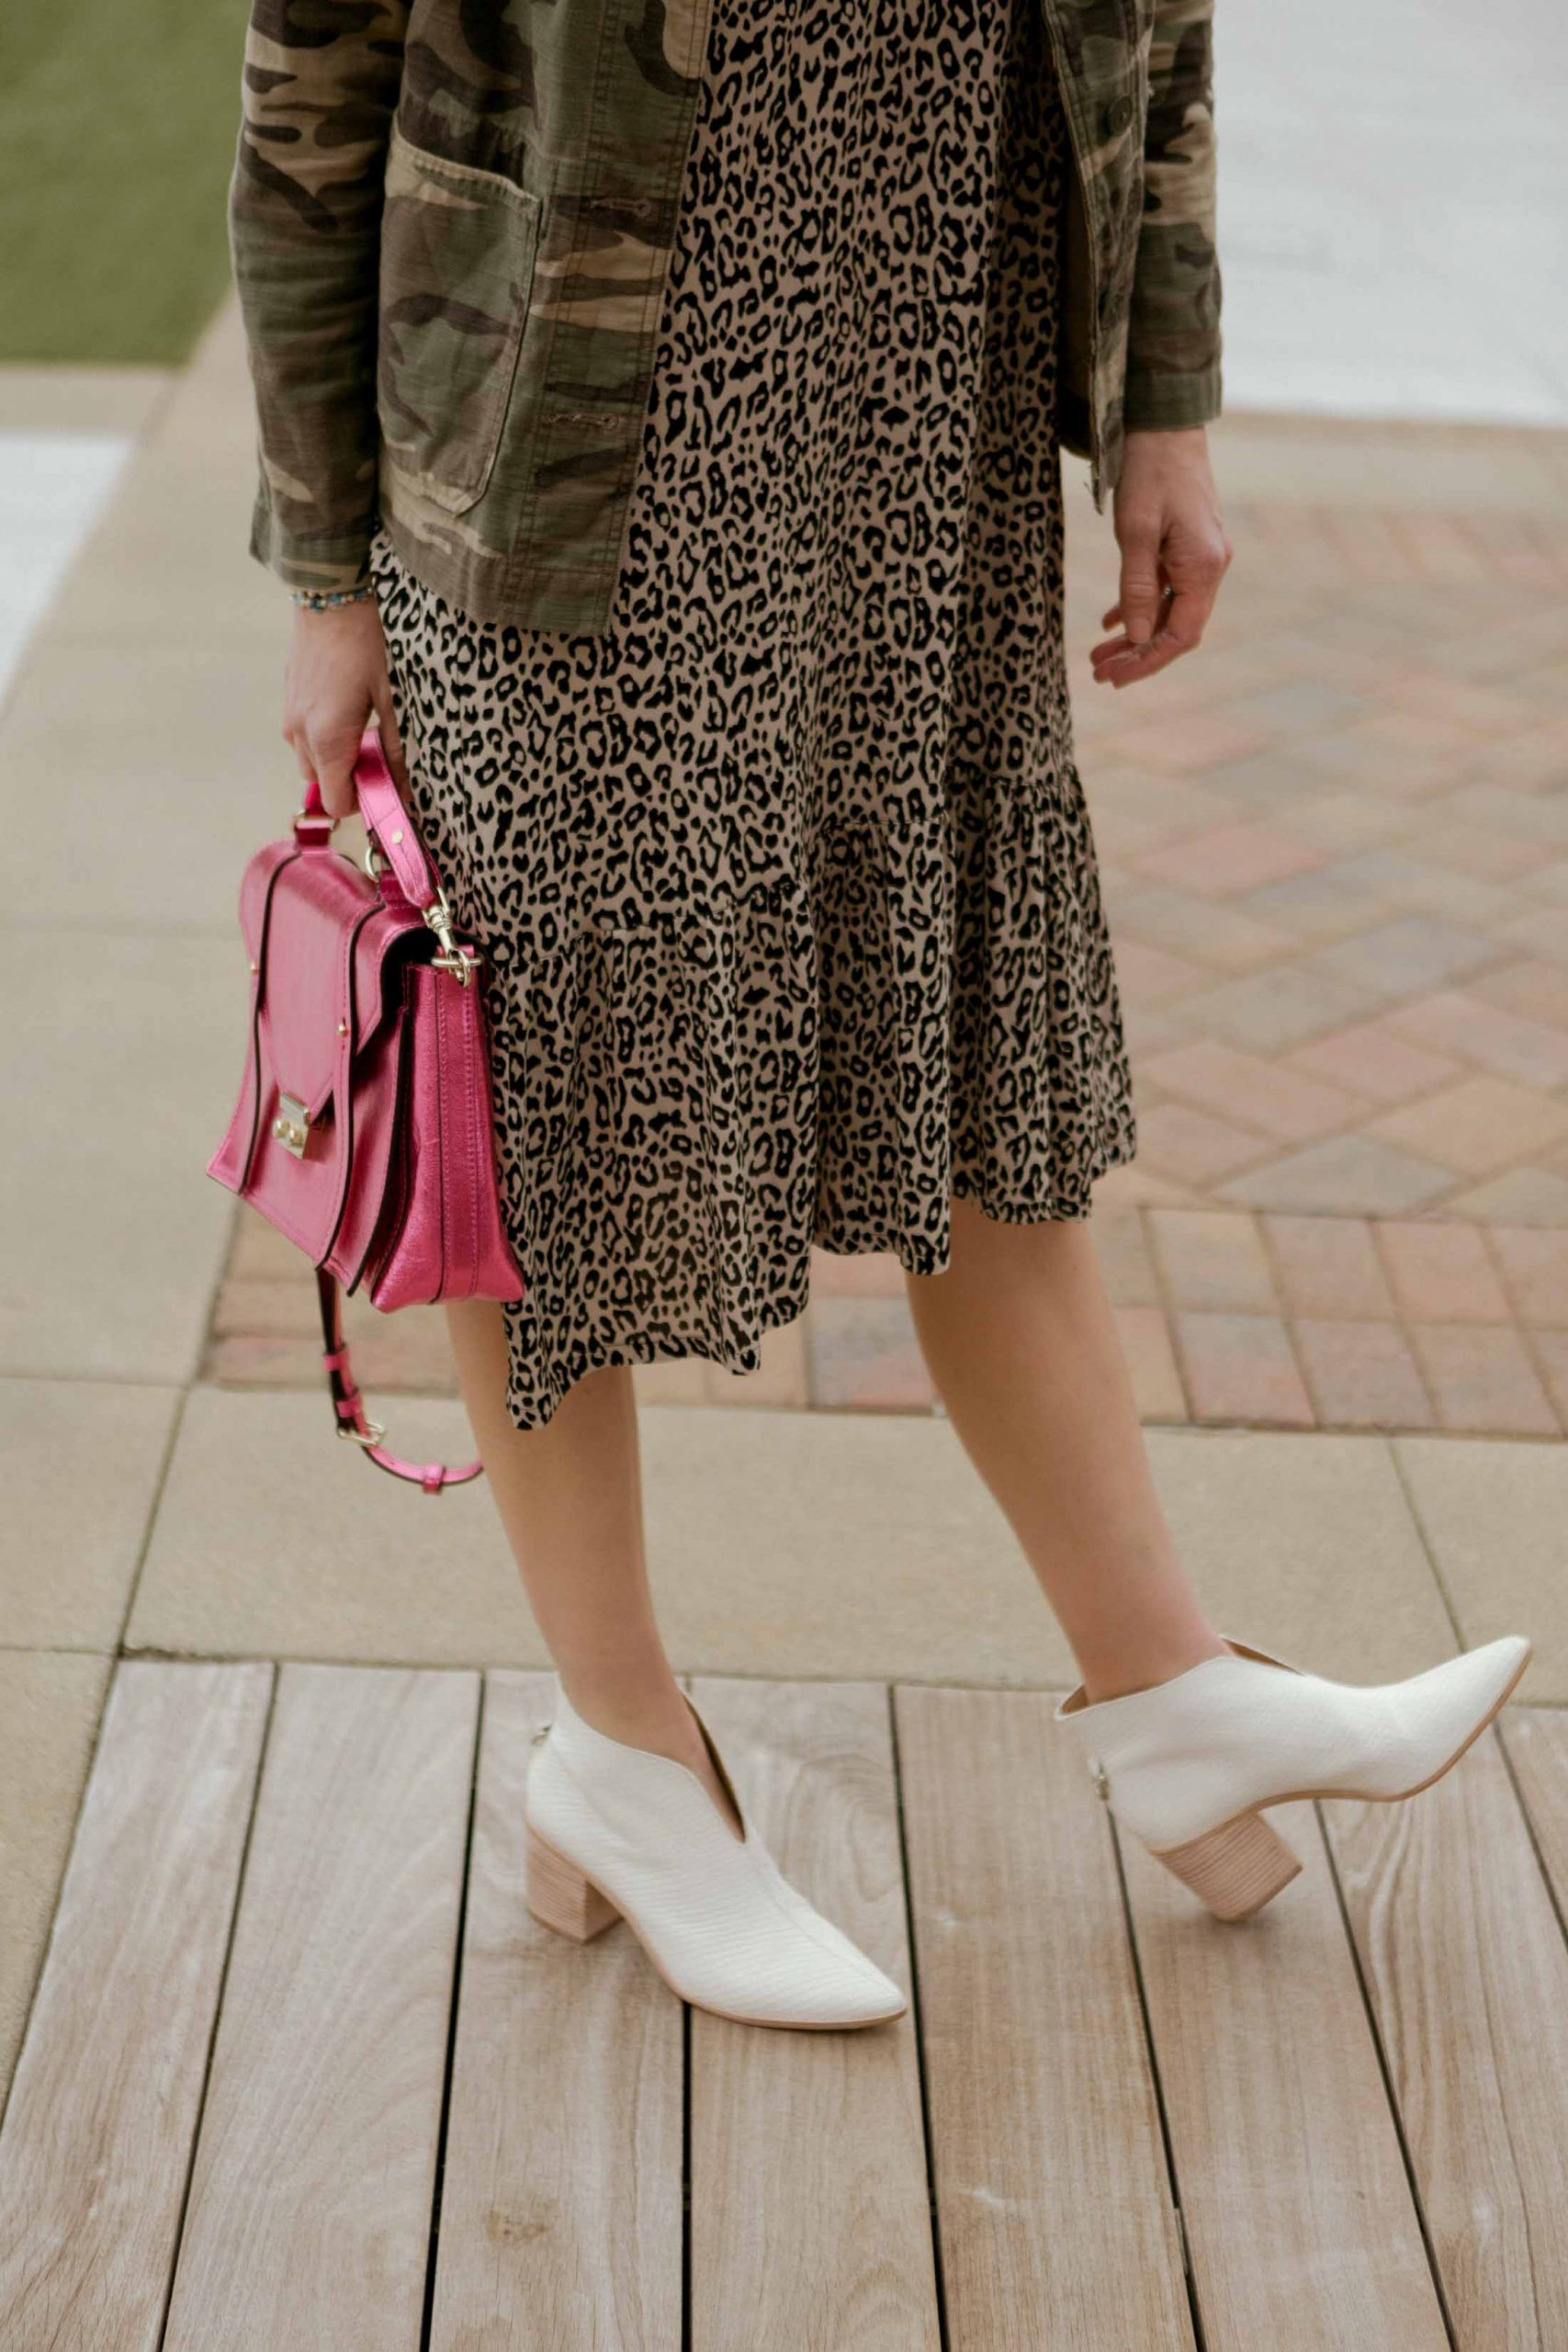 Animal print play dress + camo utility jacket & white booties = just the cute outfit idea we need to for the Late Winter, Hurry-Up-Spring feels. Bring it Spring.